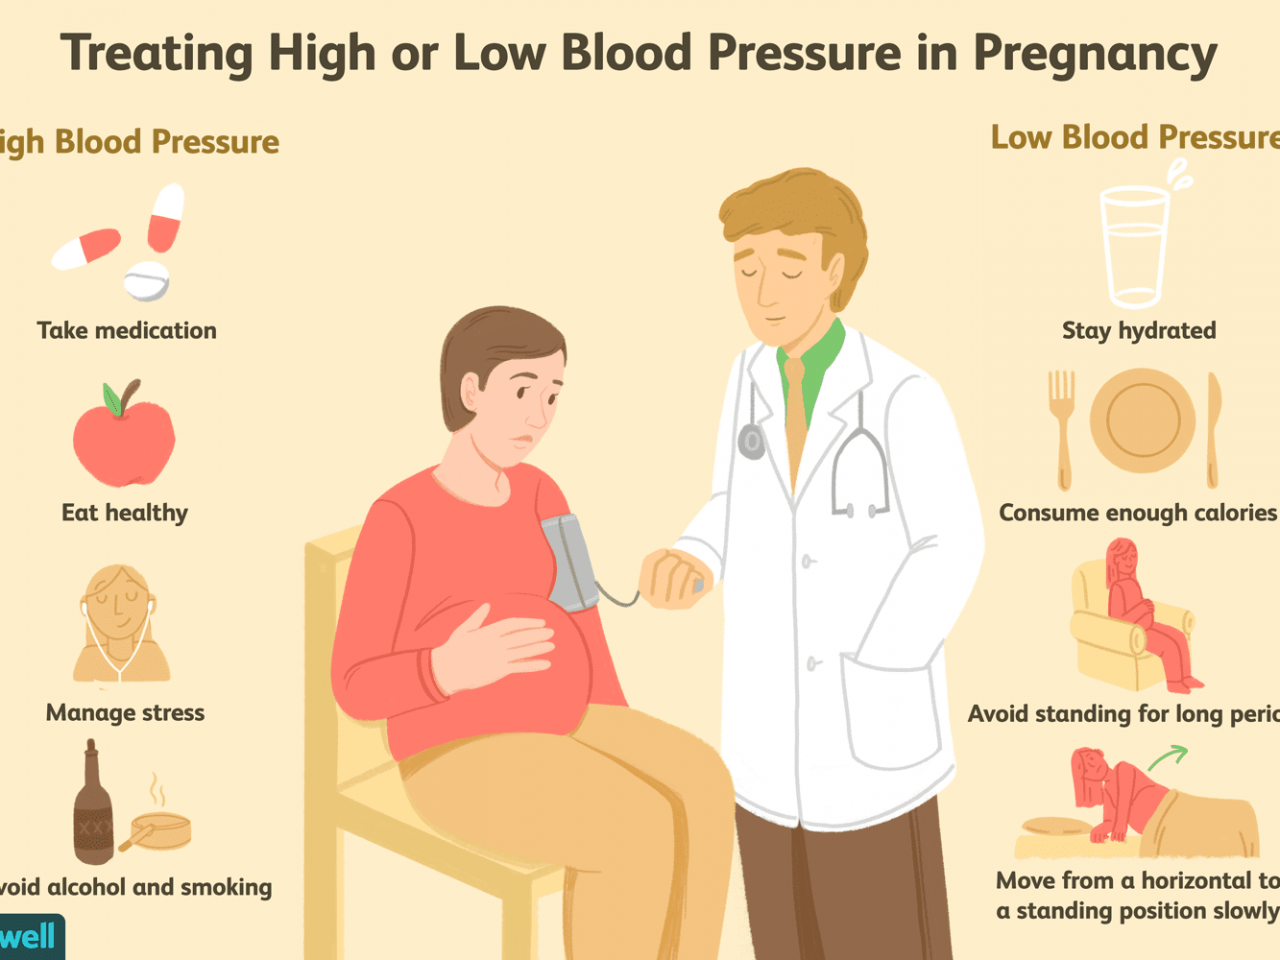 Blood Pressure in Pregnancy: How to Deal With It